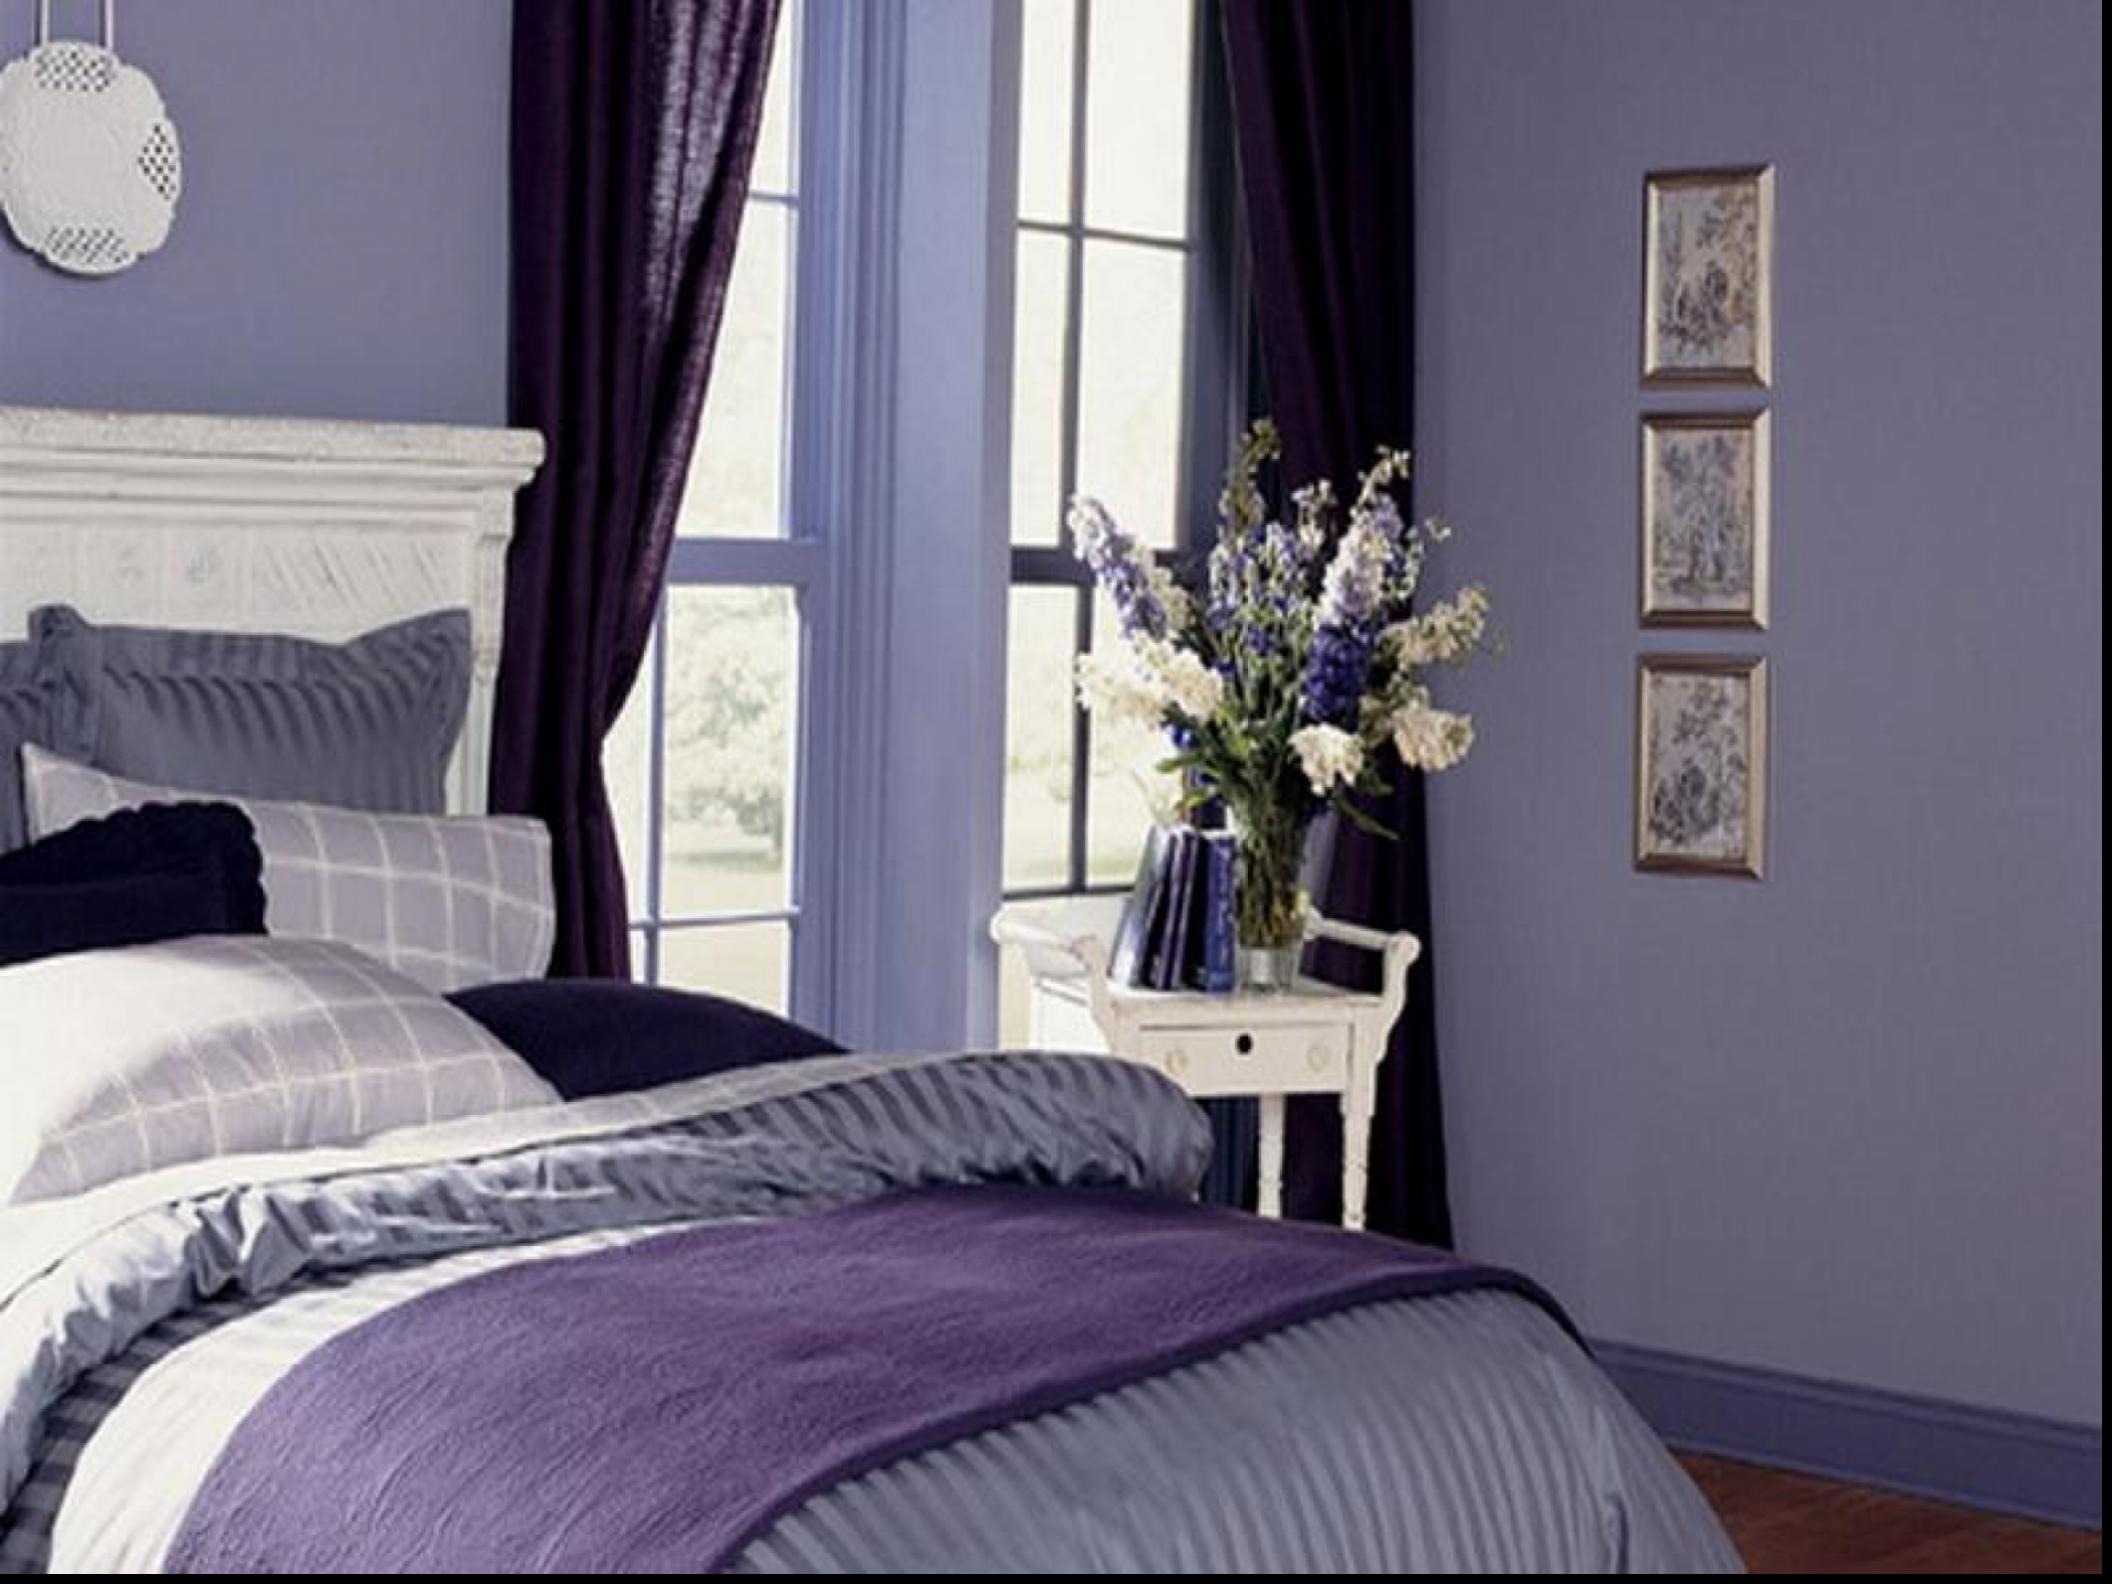 Fancy Bedroom : Appealing Wall Colour Combination For Small Bedroom Paints throughout Small Bedroom Wall Colors